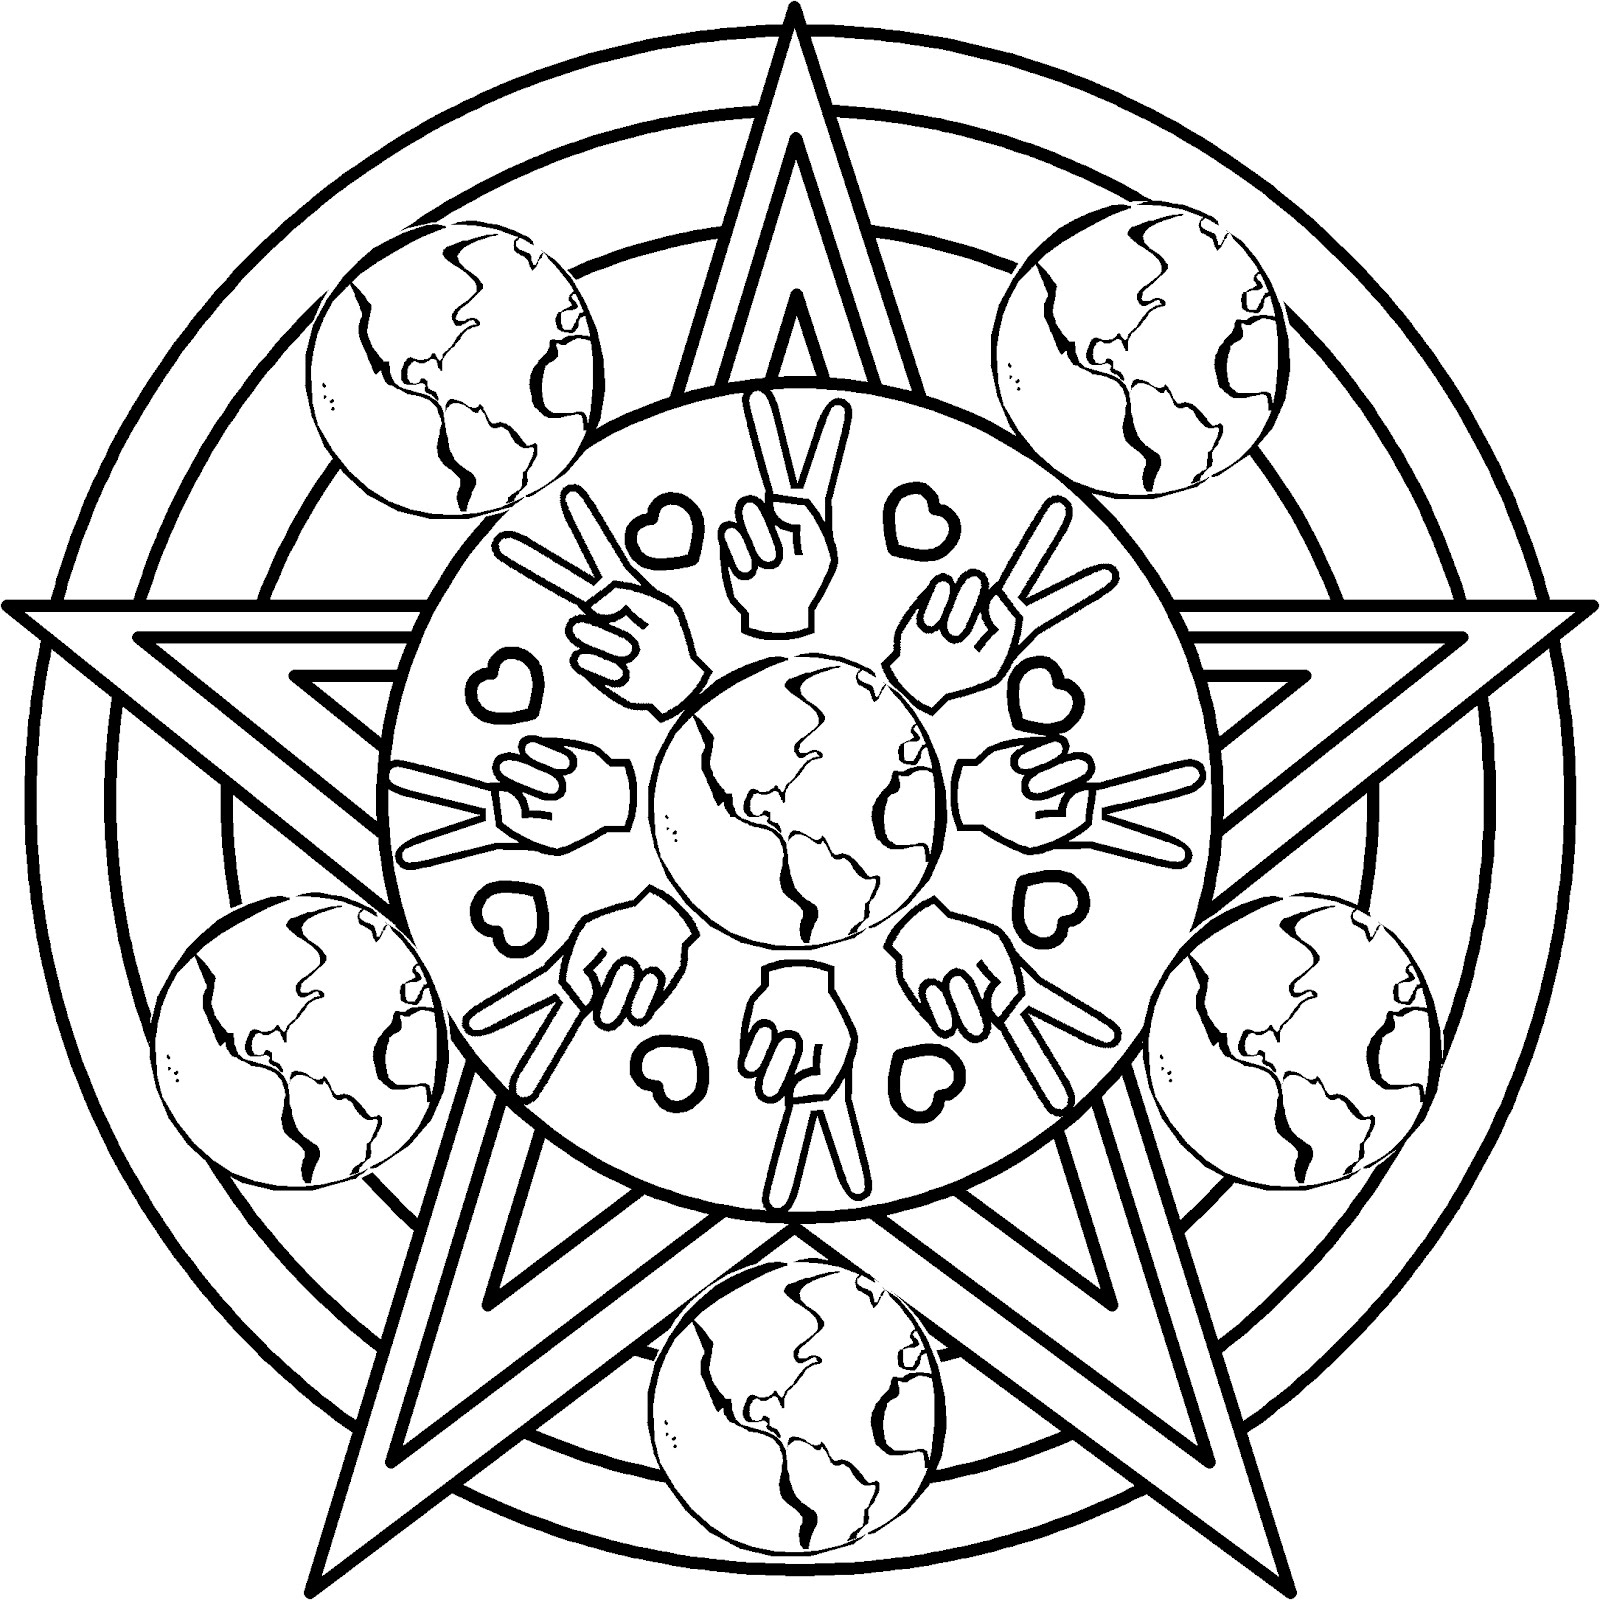 peace on earth coloring pages - mandala clip art clipart best